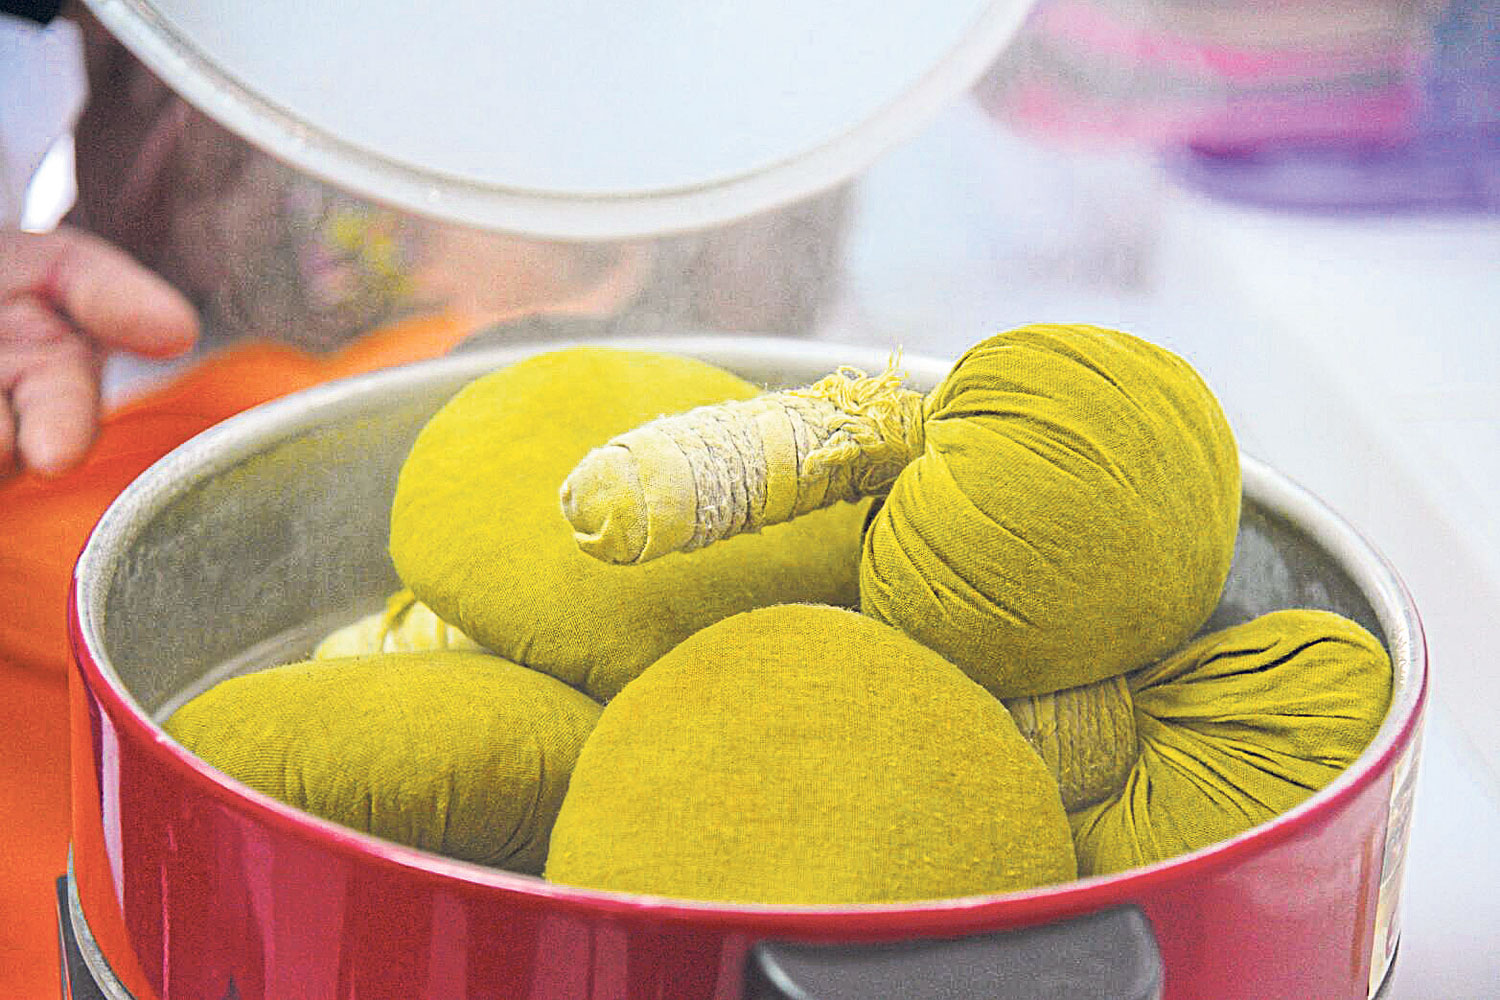 'Luk pra kob' balls stuffed with herbs are used for massaging elderly folk who need physiotherapy.